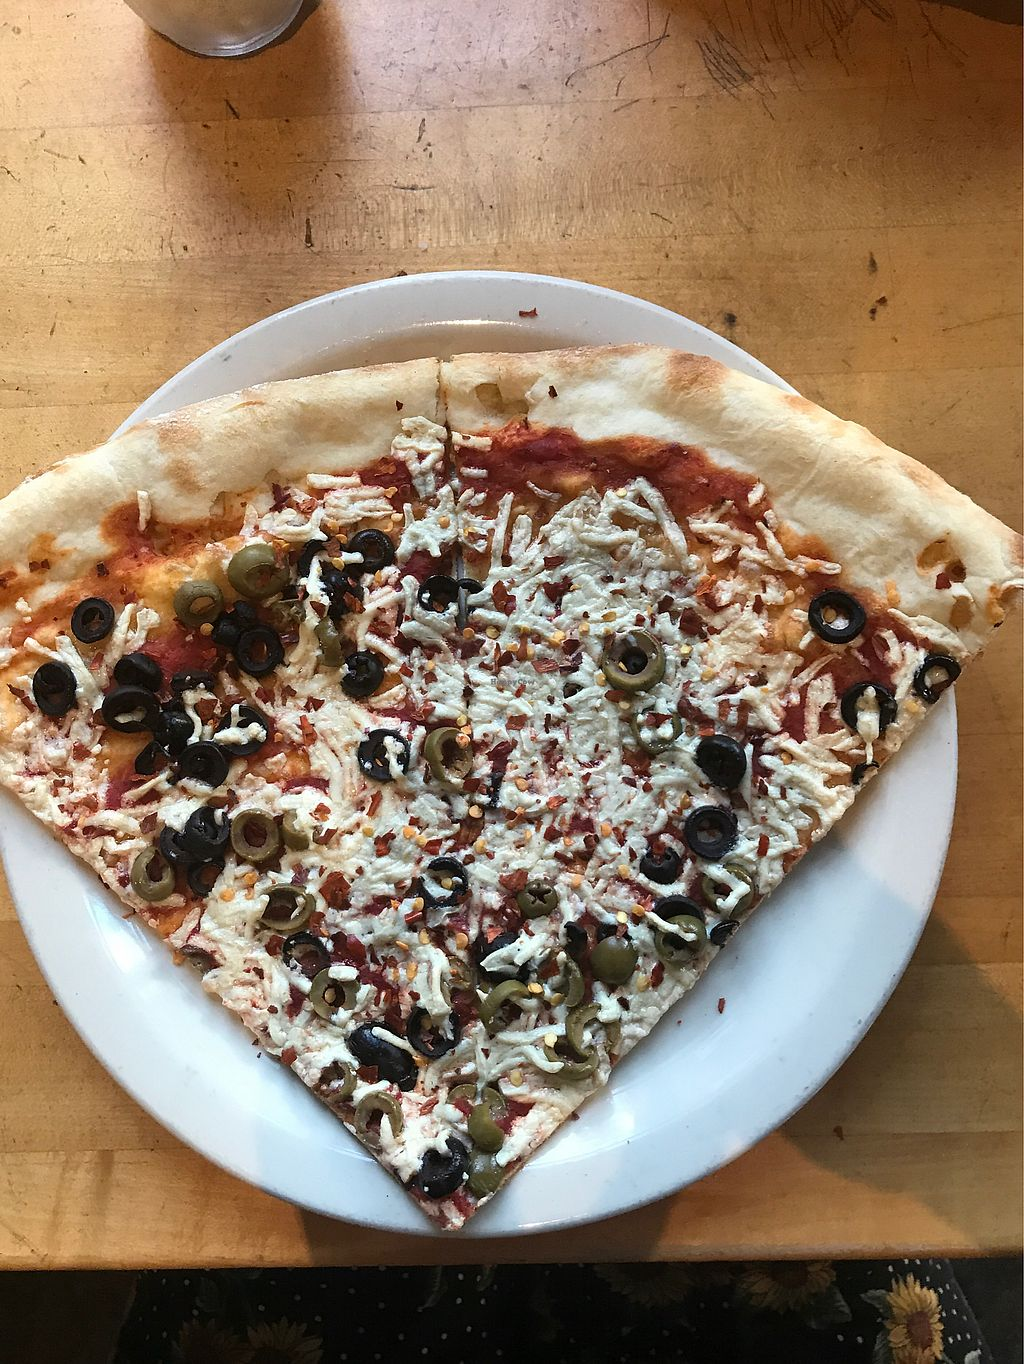 """Photo of Este Pizza - downtown SLC  by <a href=""""/members/profile/AmberPollard"""">AmberPollard</a> <br/>Simple 2 Olive Pizza by the slice  <br/> September 23, 2017  - <a href='/contact/abuse/image/44578/307622'>Report</a>"""